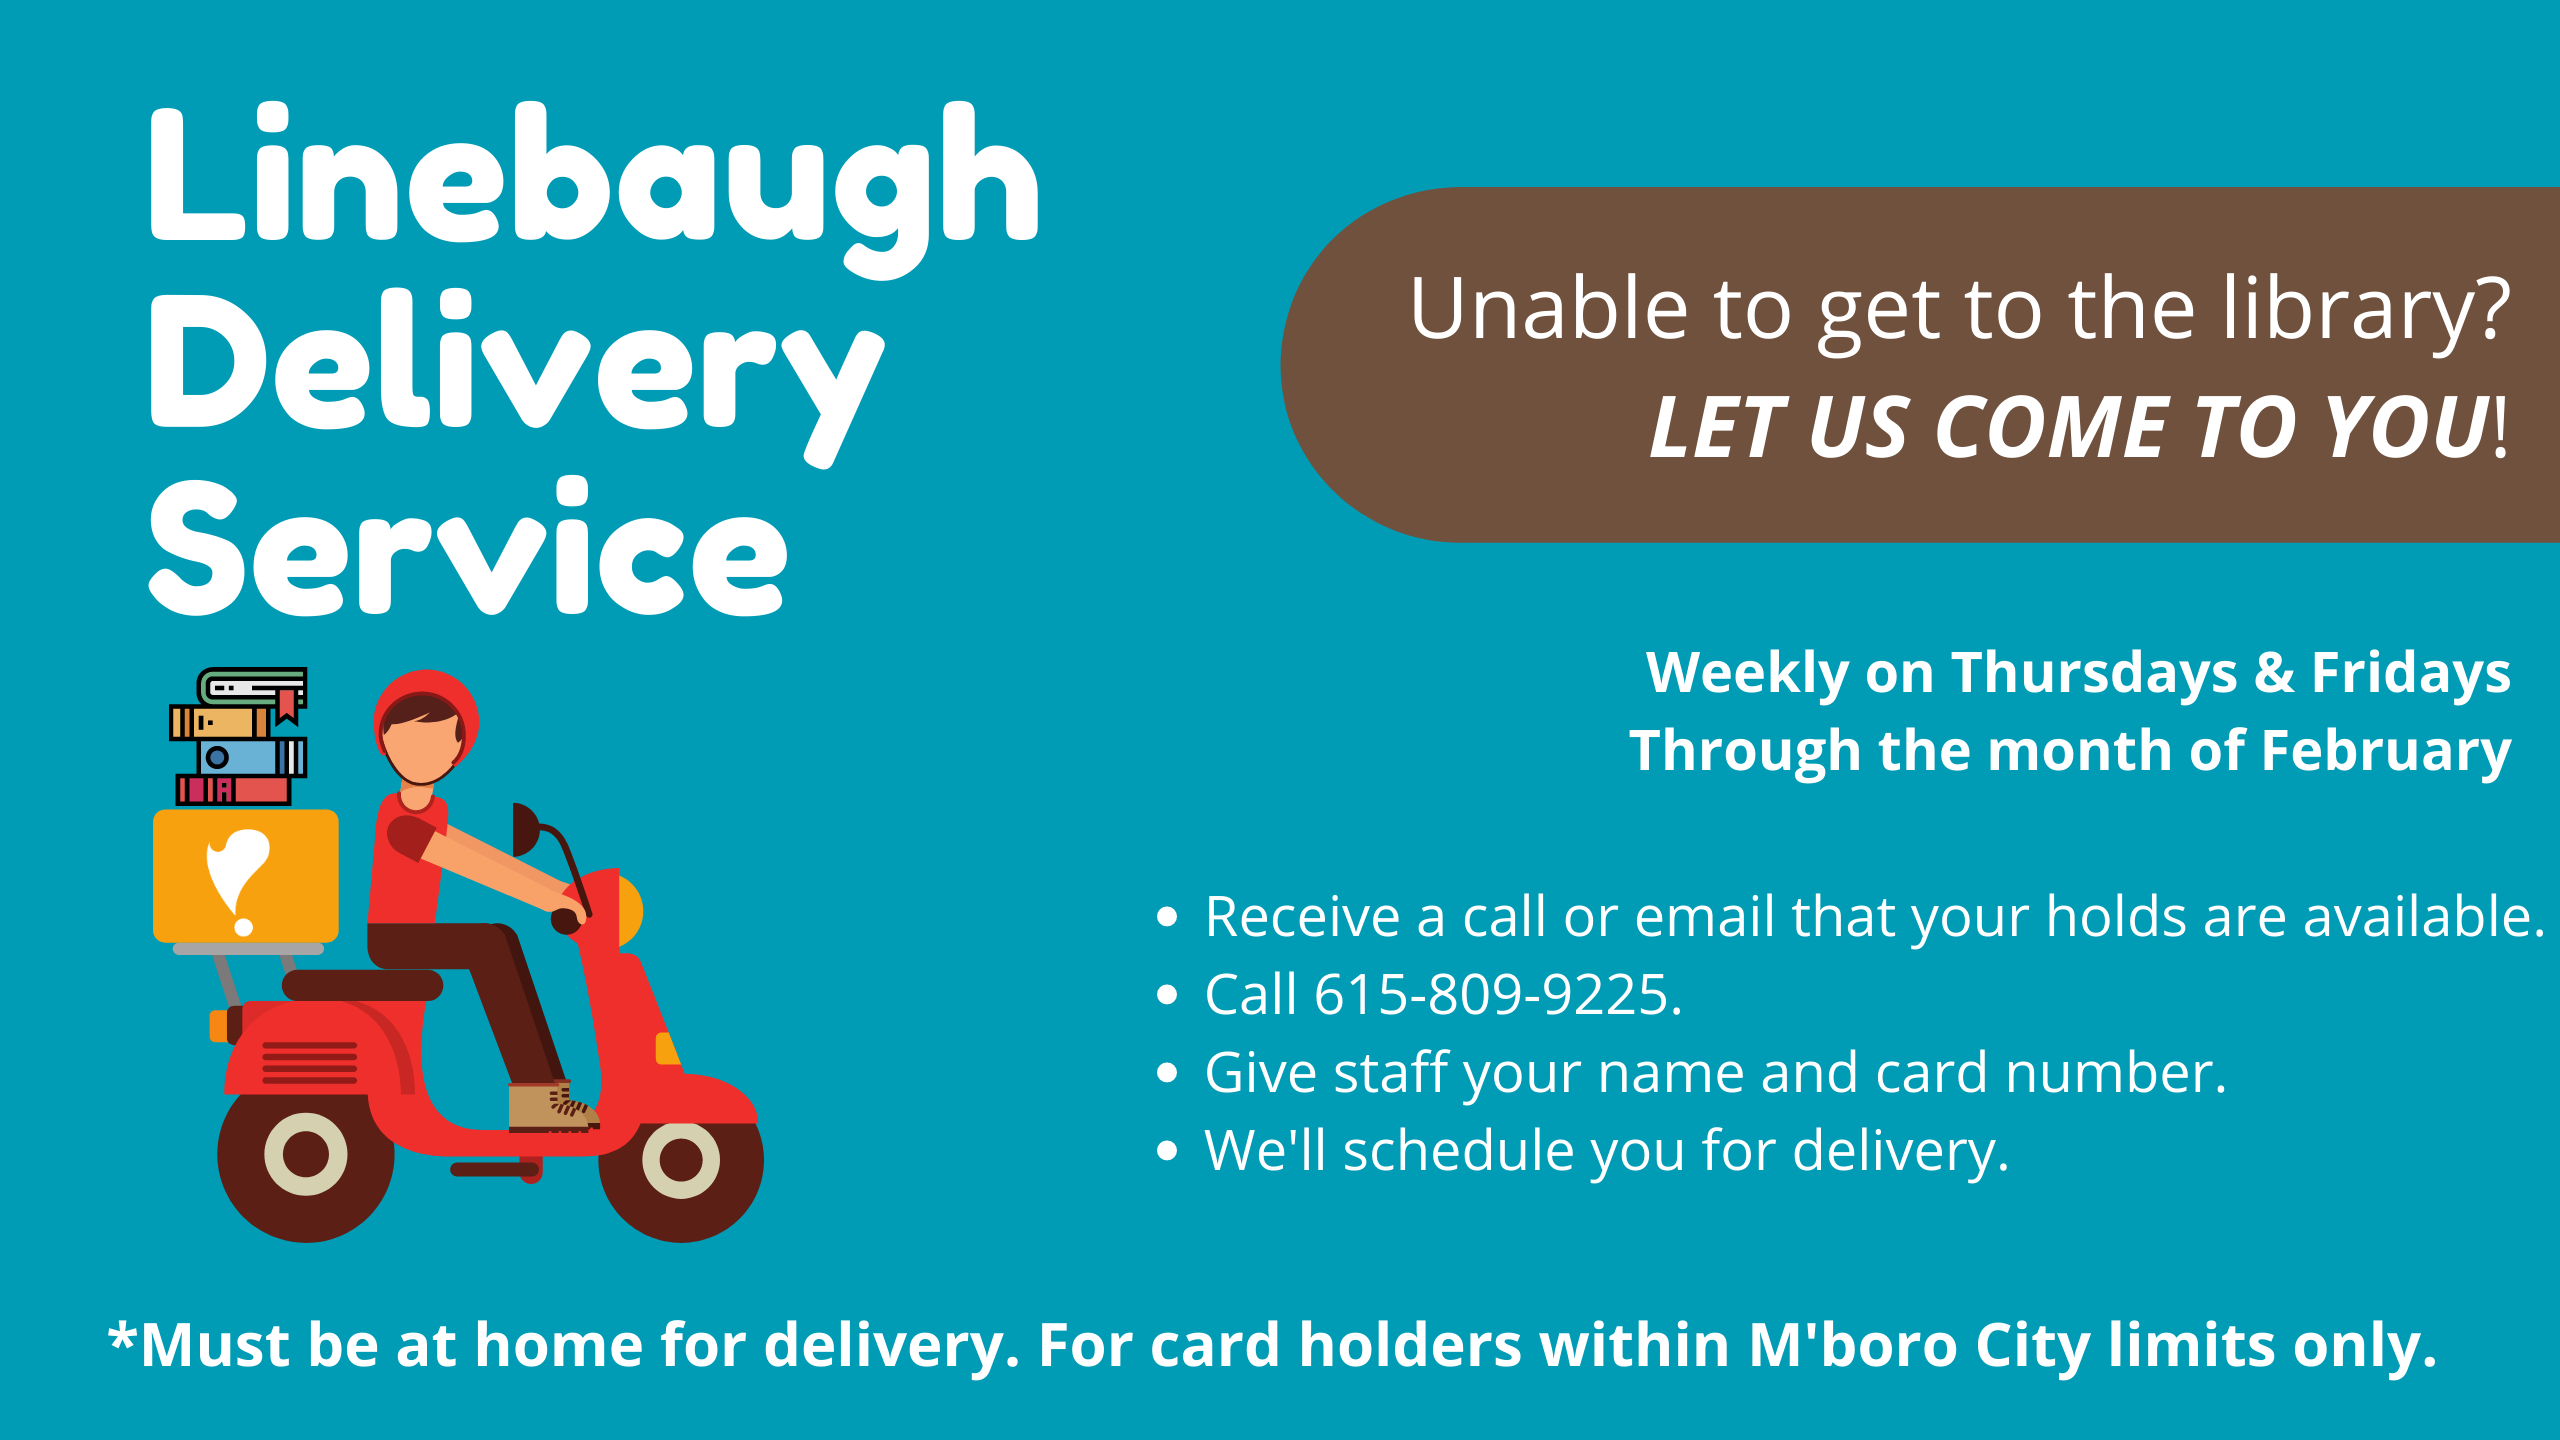 Temporary Delivery Service for Linebaugh Patrons